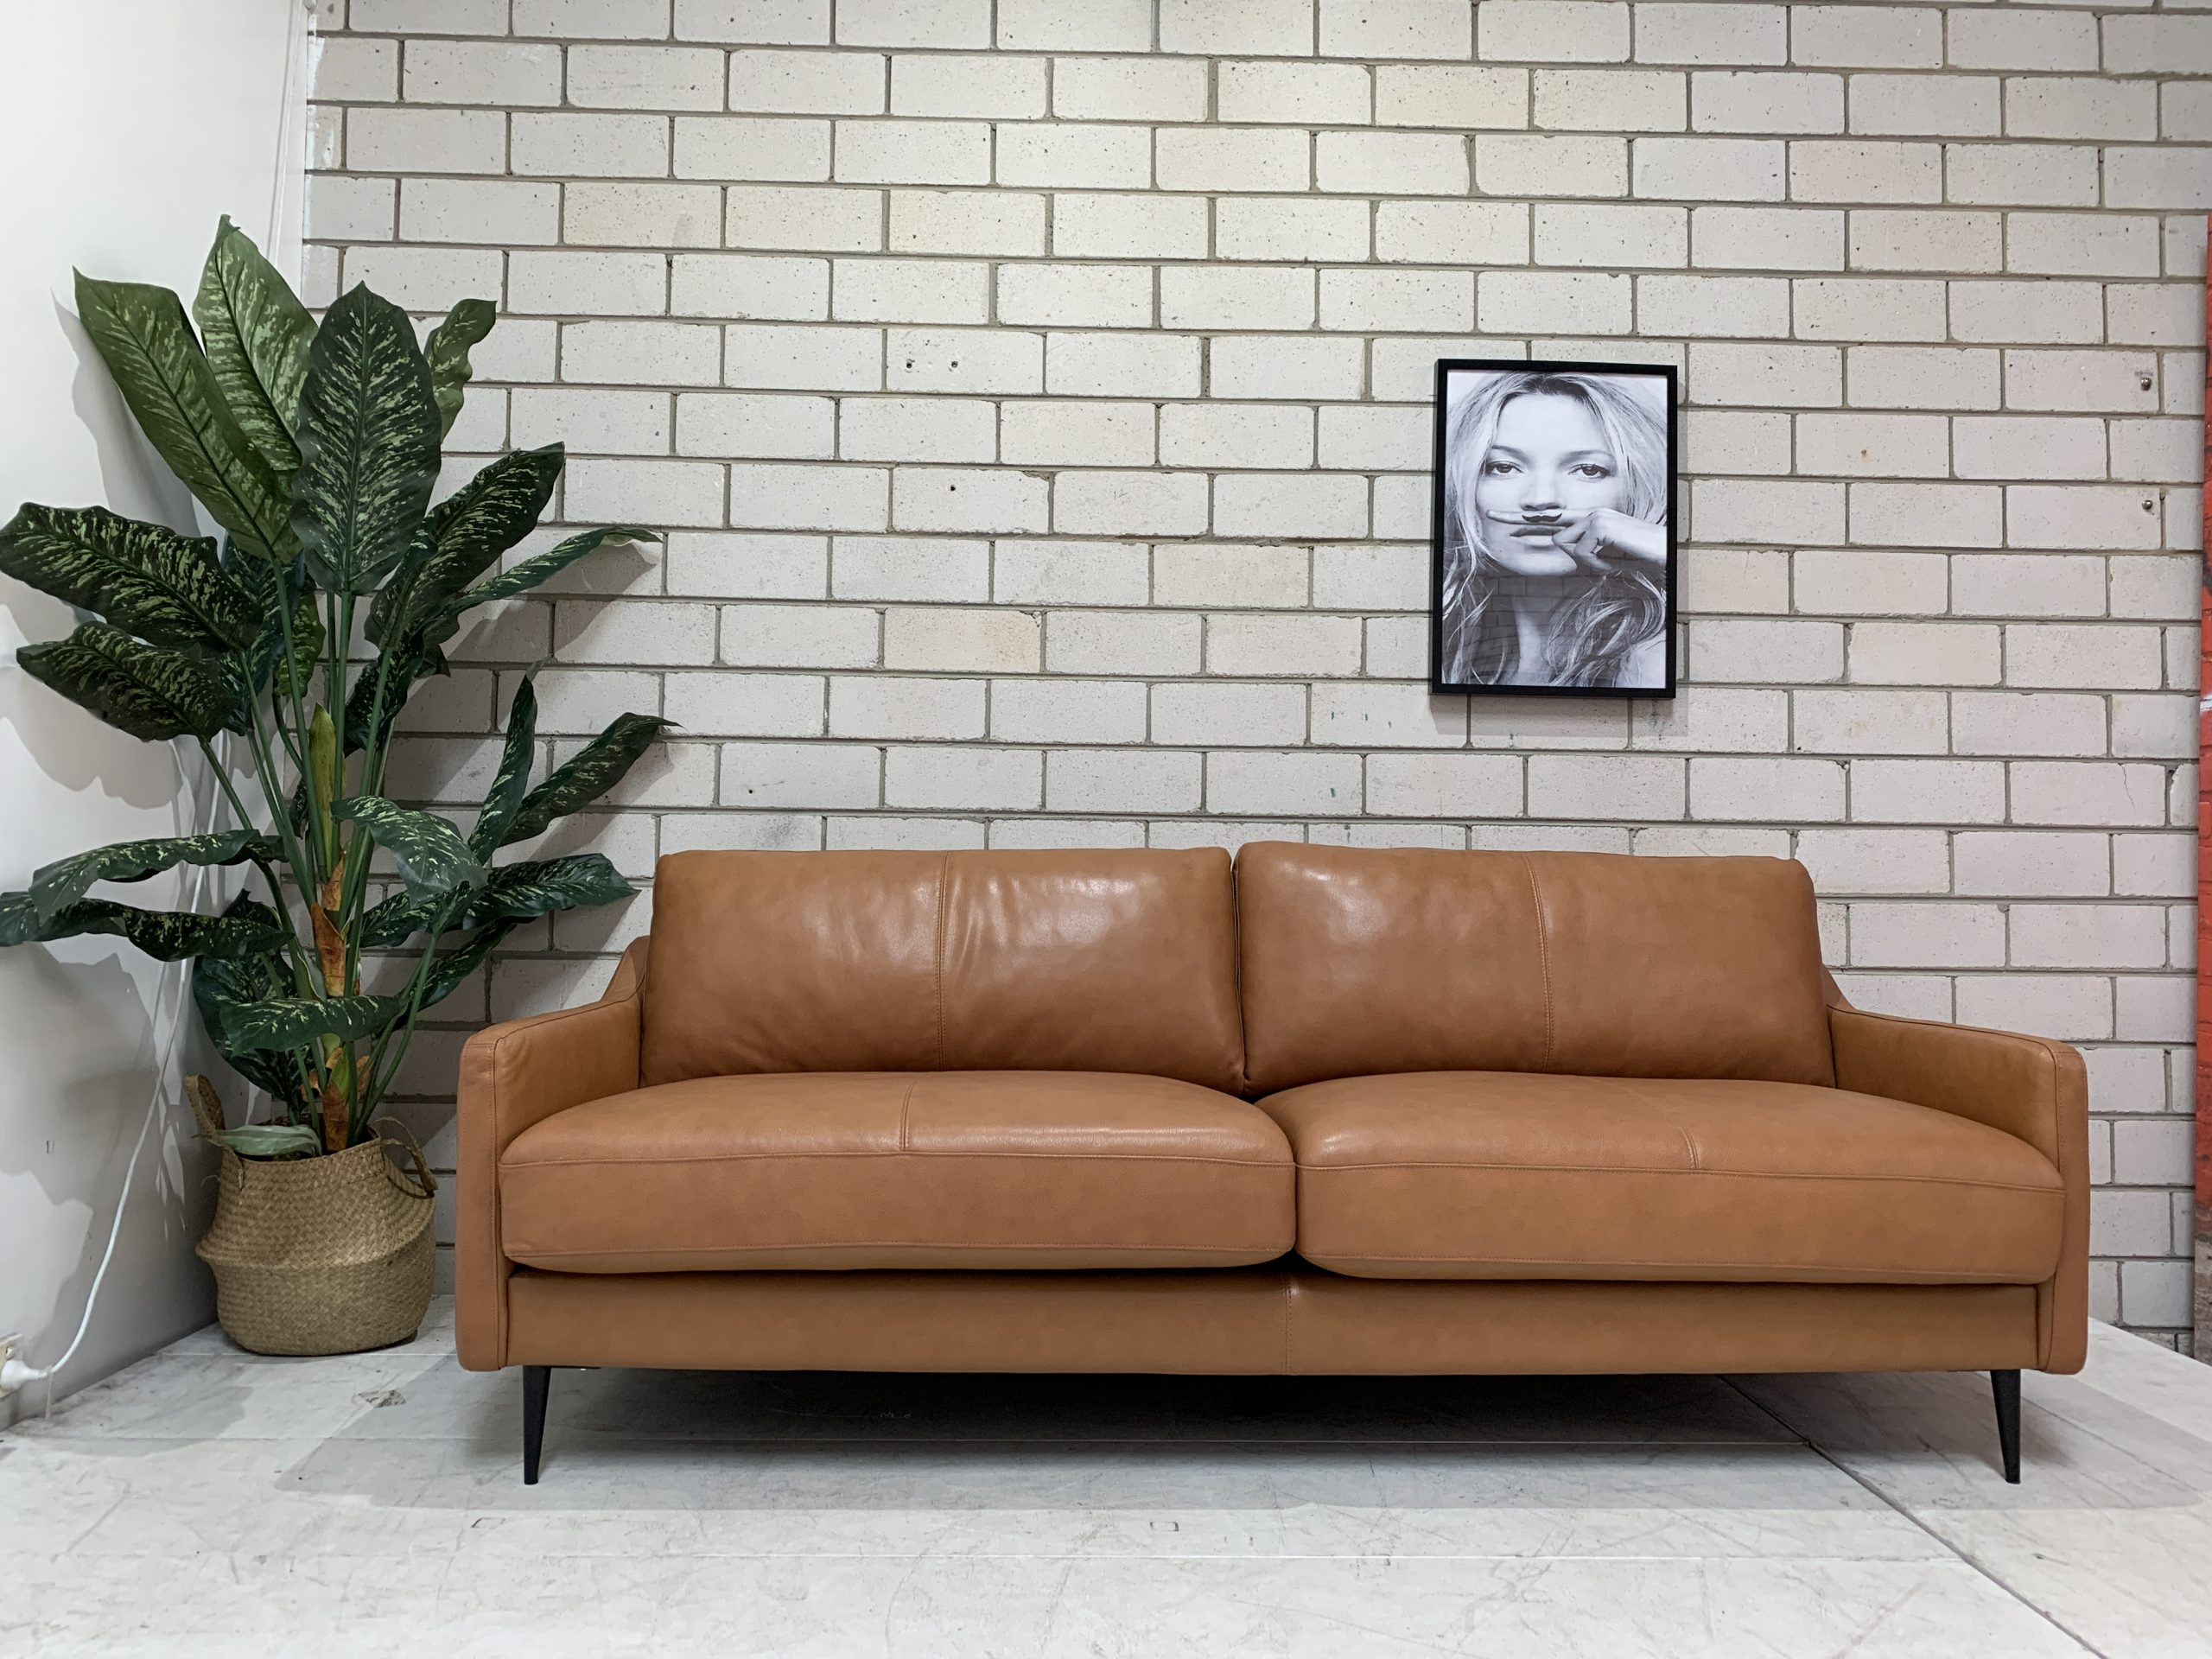 Best Cheap Leather Sofas in Melbourne - Mentone Furniture Clearance Centre